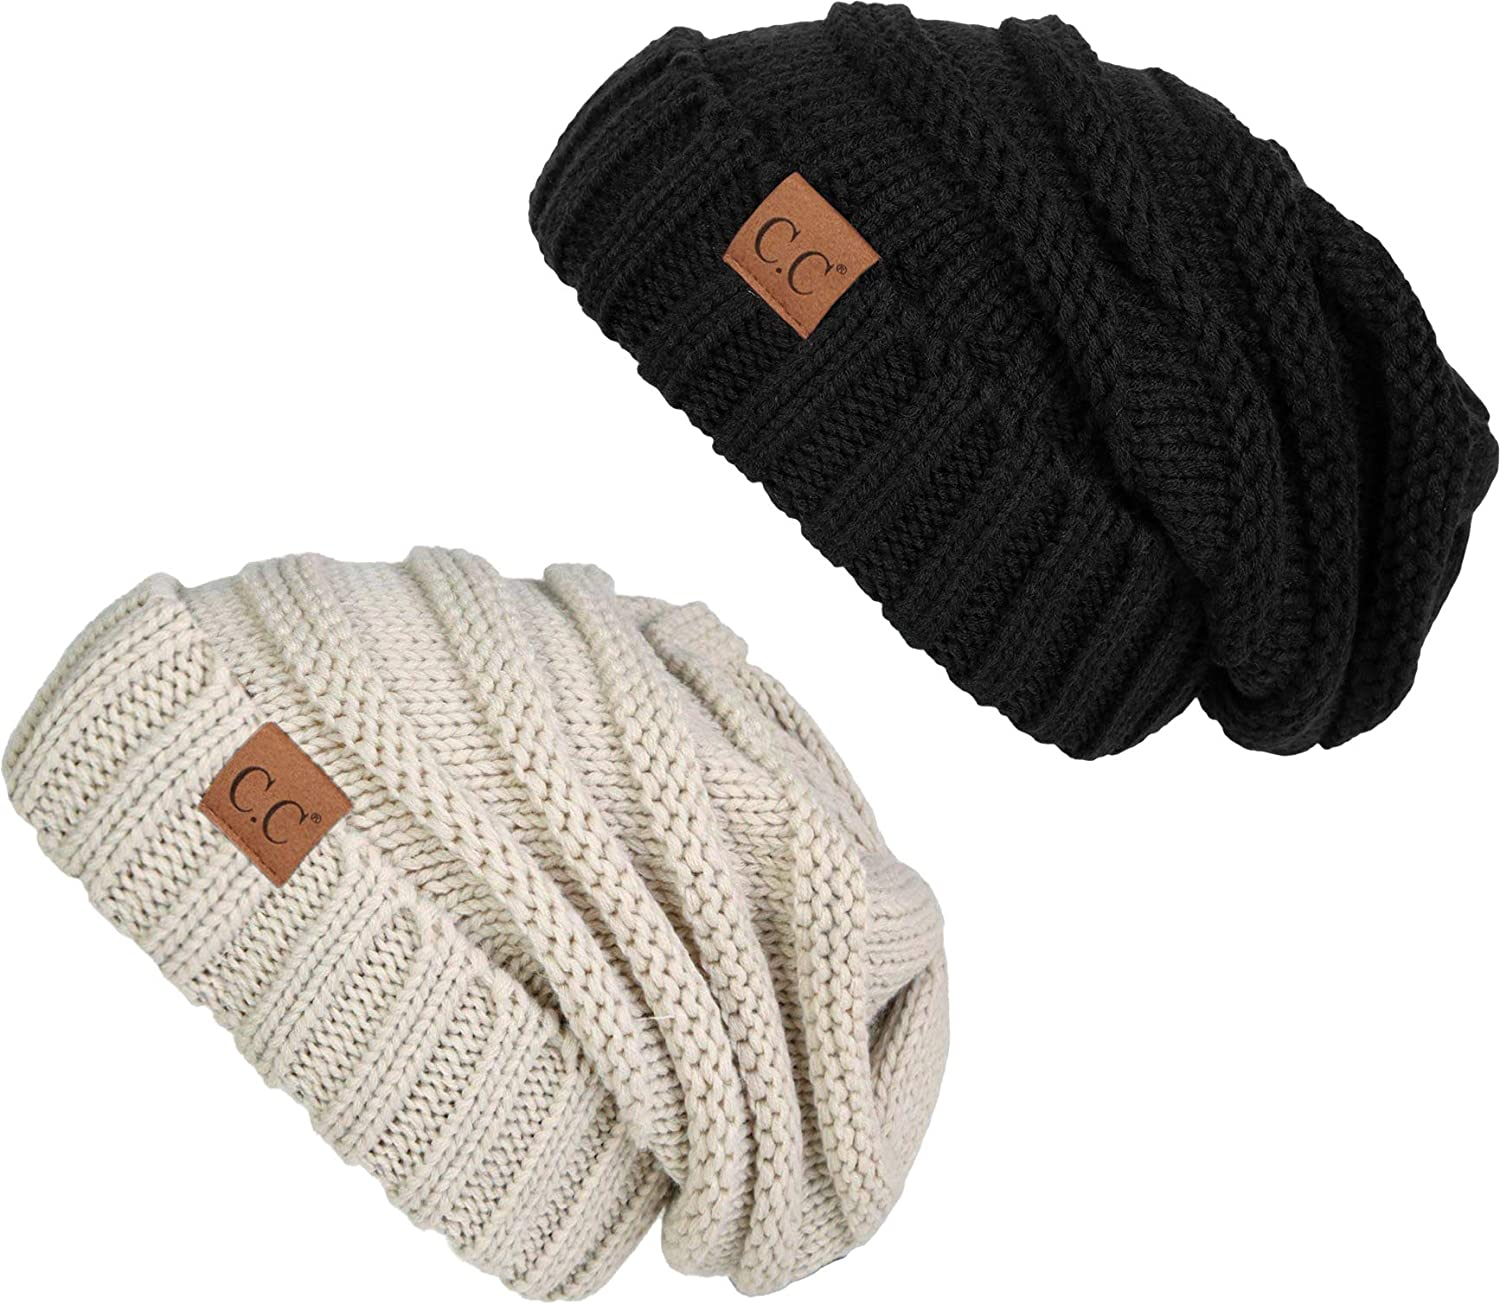 H-6100-2-0660 Oversized Beanie Bundle - 1 Solid Black ec5bbe5fa91